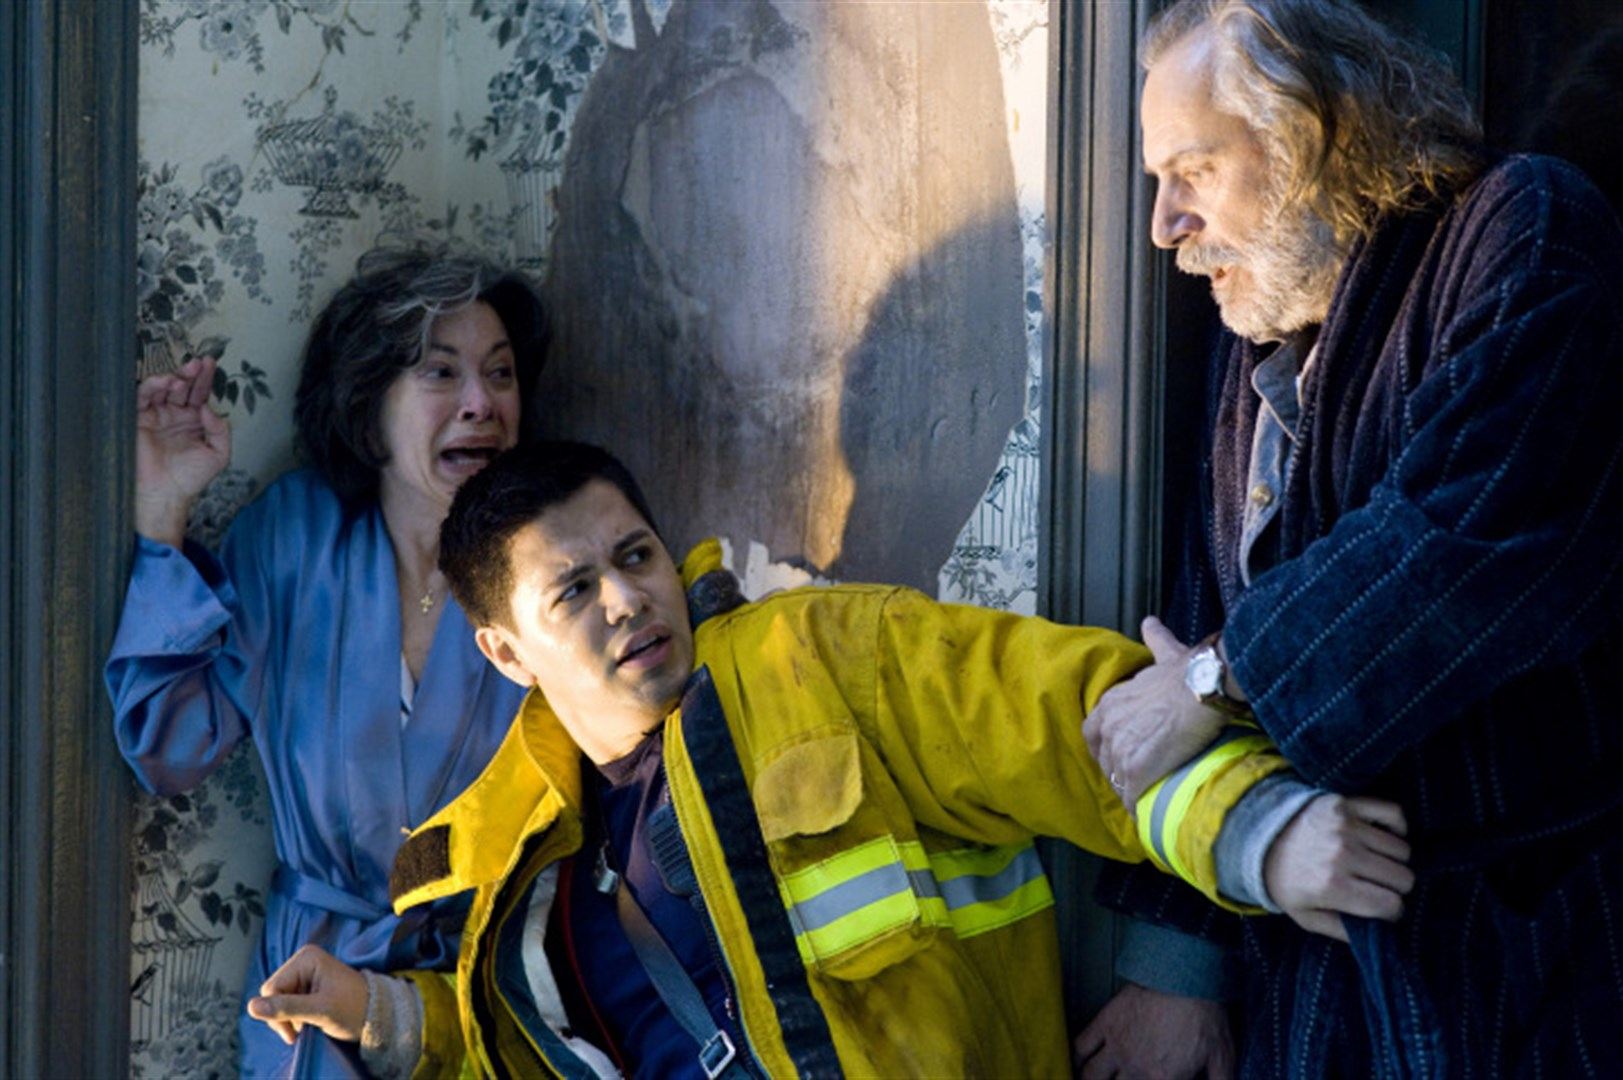 (l to r) Elaine Kagan and fireman Jay Hernandez recoil from Rade Serbedzija in Quarantine (2008)